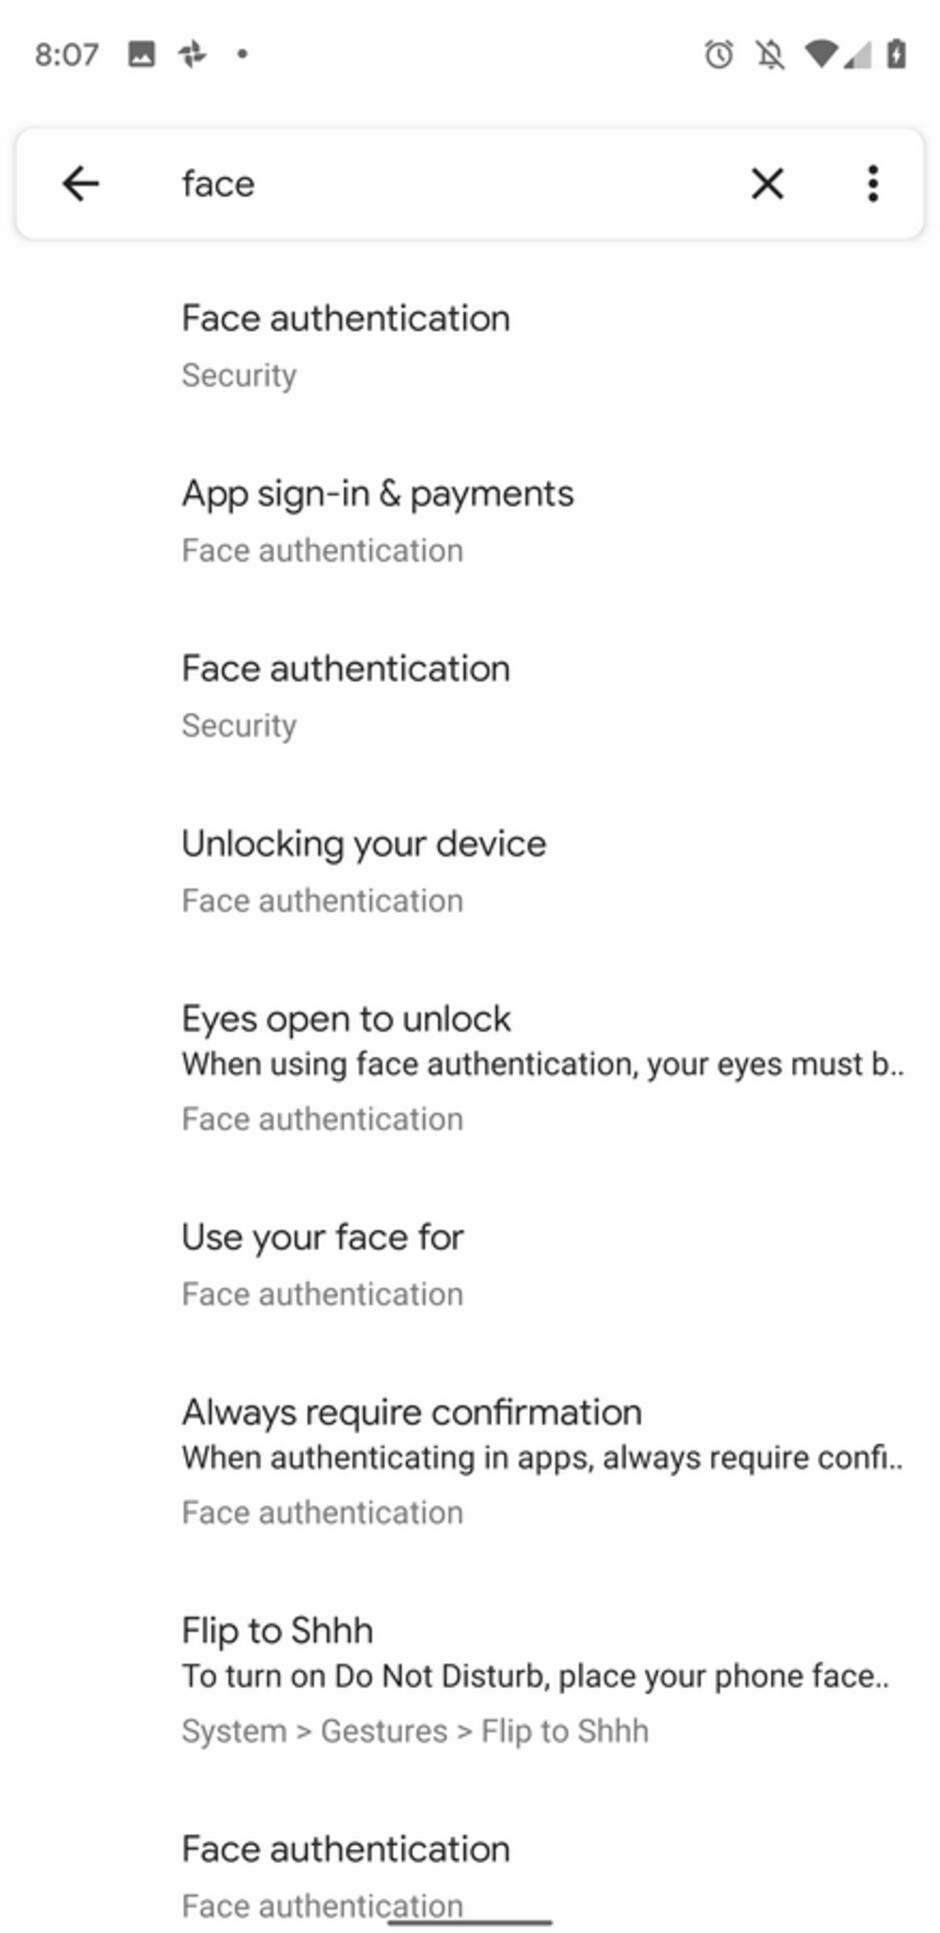 Hidden settings page for Android Q's Face authentication - Hidden 'Face authentication' settings found in latest Android Q Beta